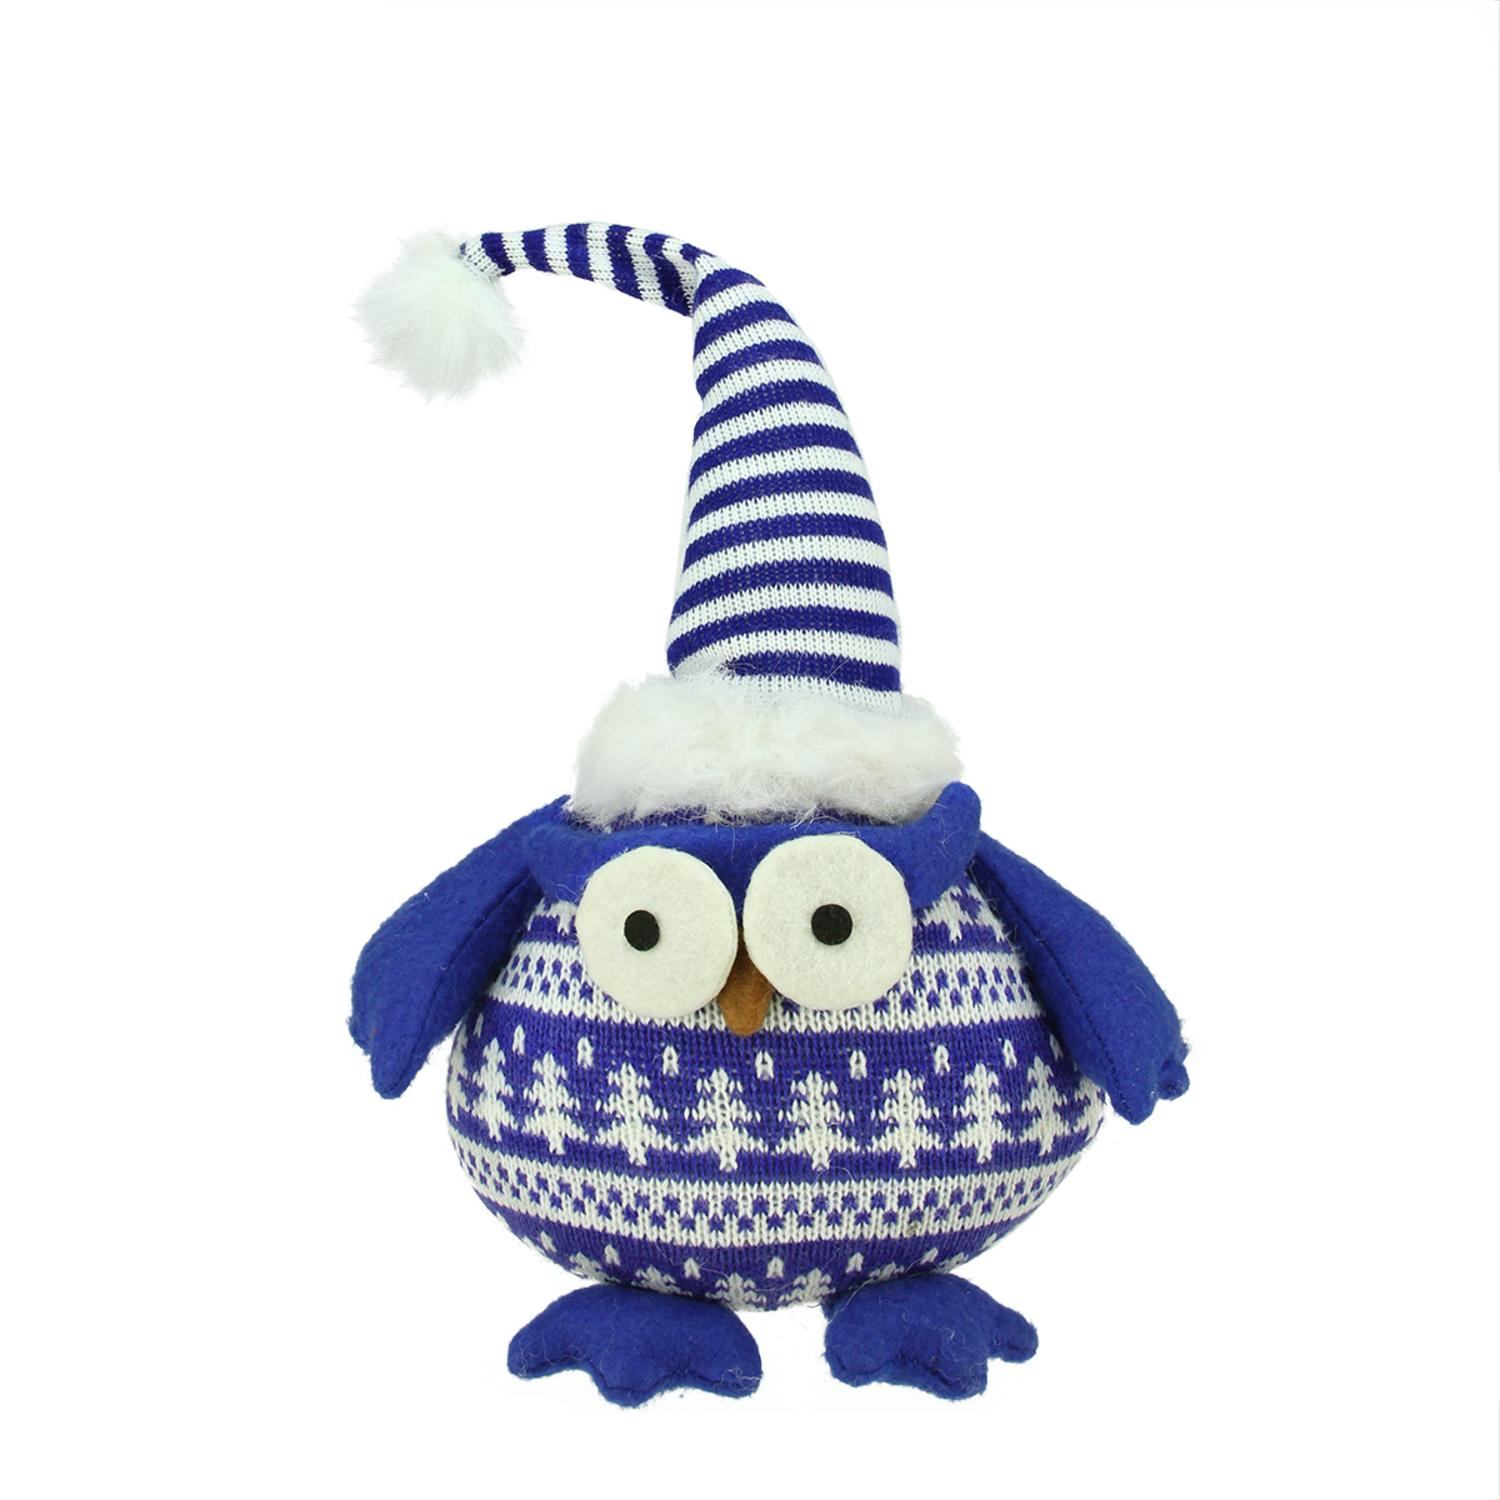 ''12'''' Chubby Blue and White Plaid Owl with Striped Hat and Winter SWEATER Table Top Christmas Figure